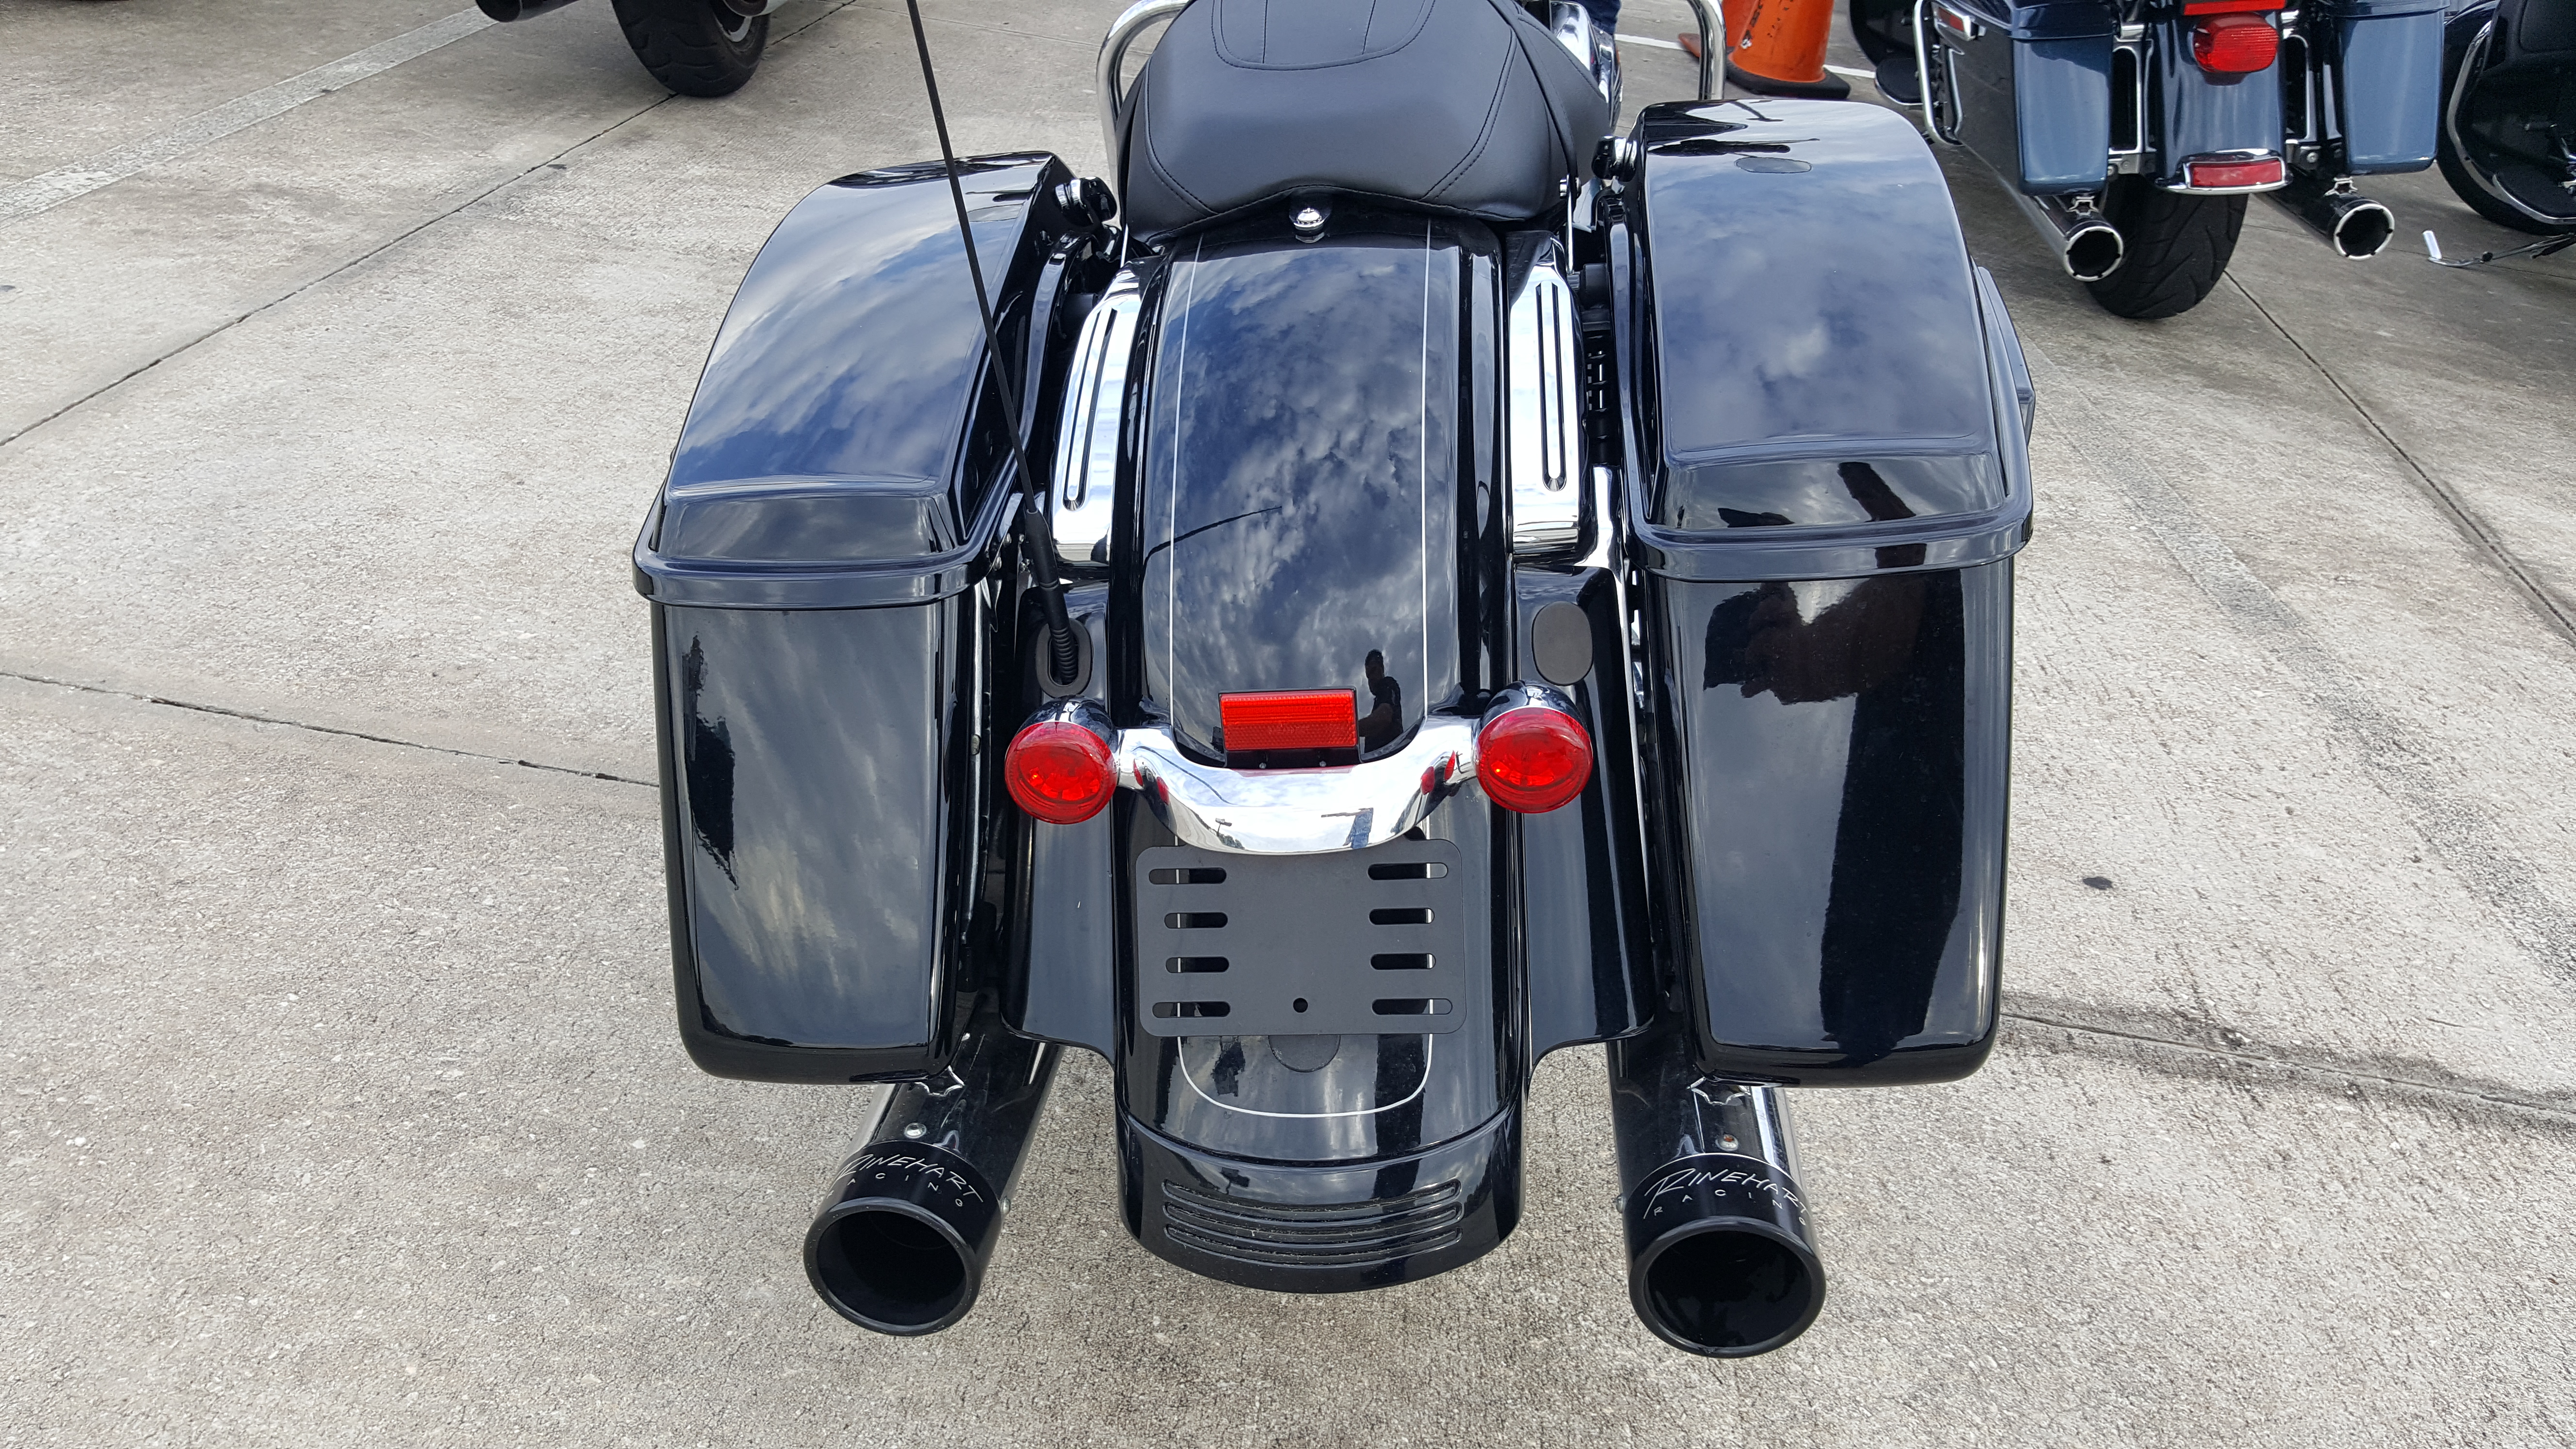 Pre-Owned 2015 Harley-Davidson Road Glide Special